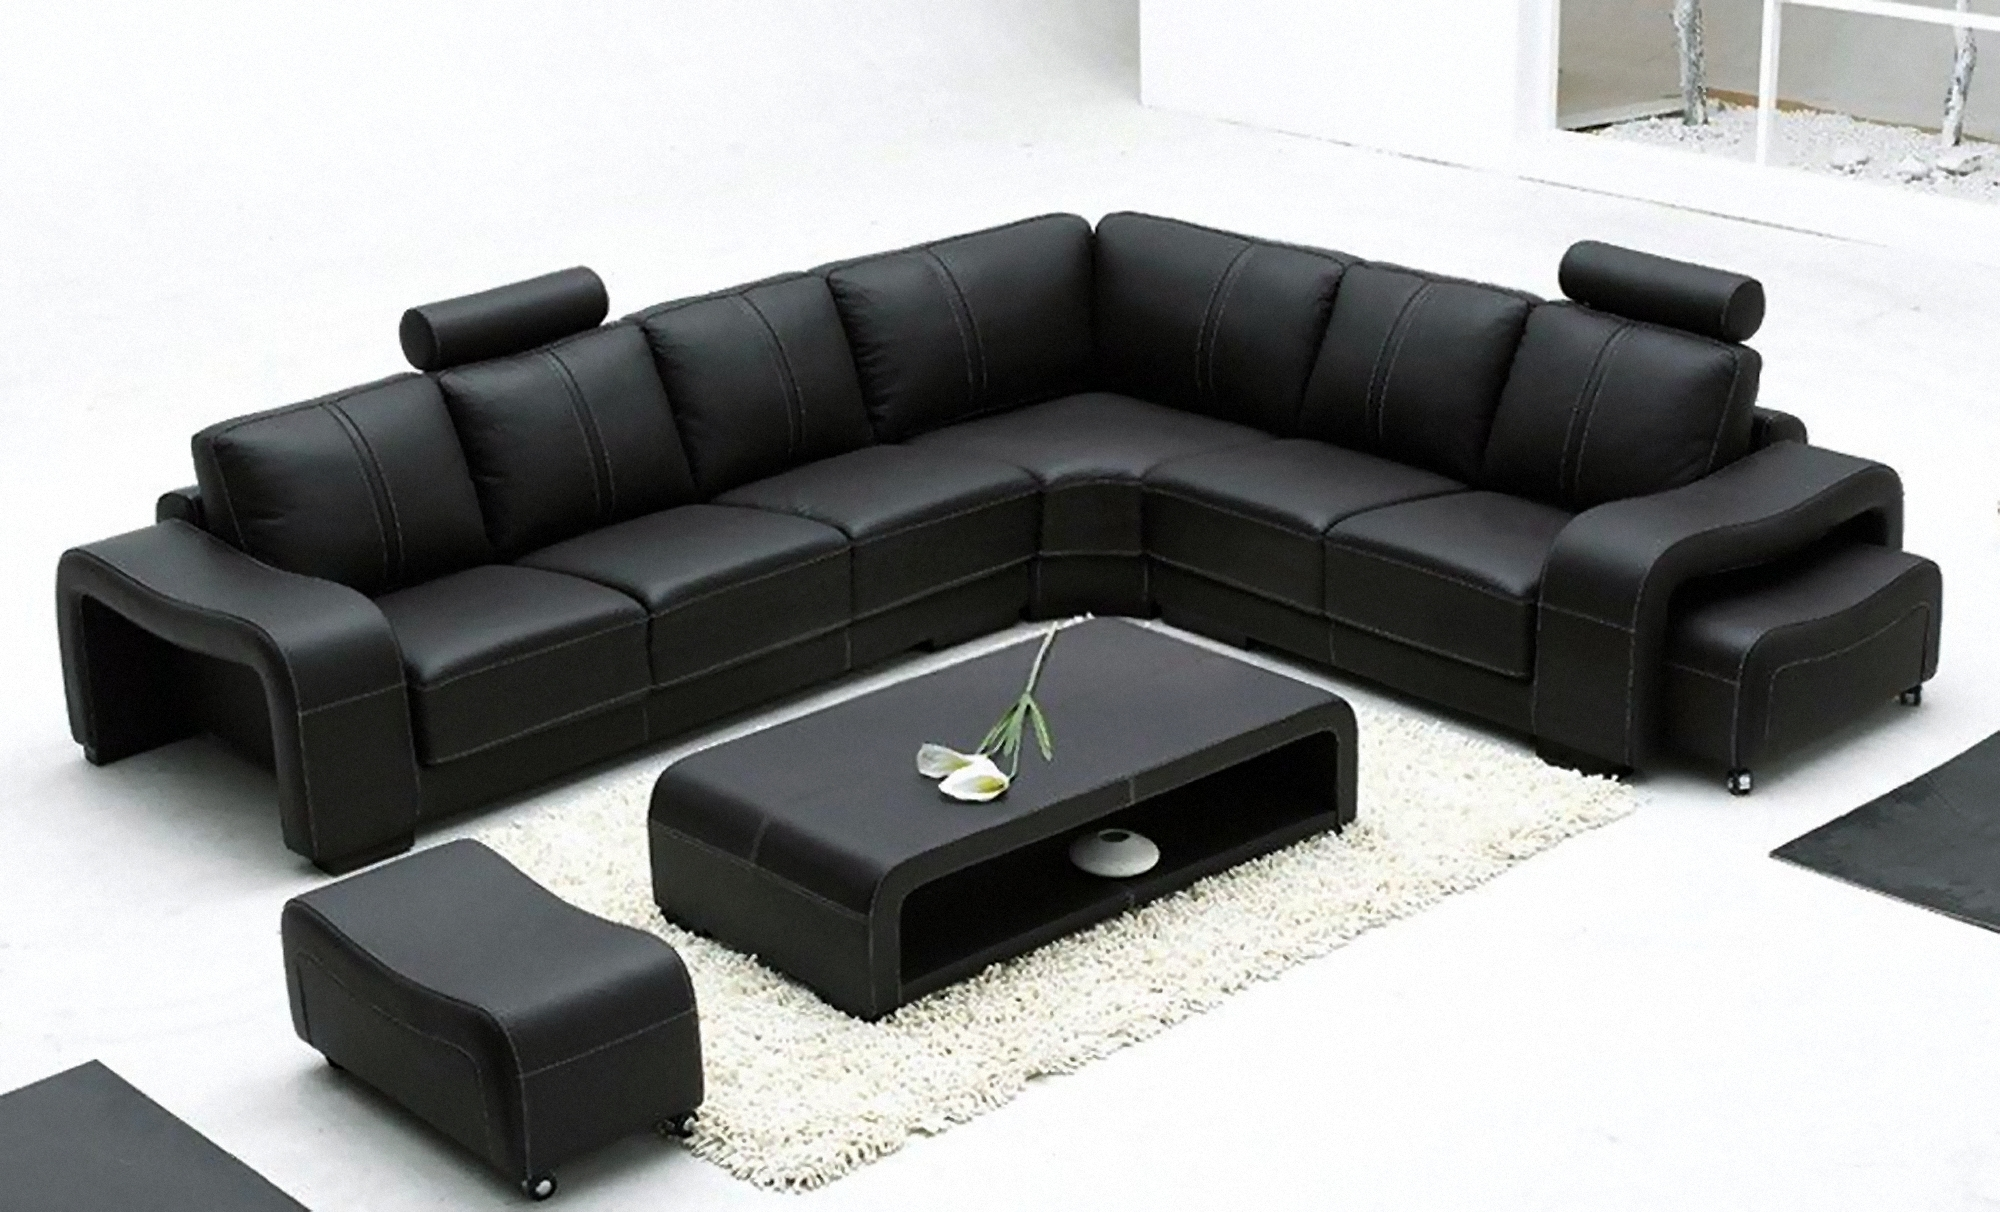 Italian Leather Sofas | Corner Sofas | Modern 2 & 3 Seater Sofas With Large Black Leather Corner Sofas (Image 11 of 22)